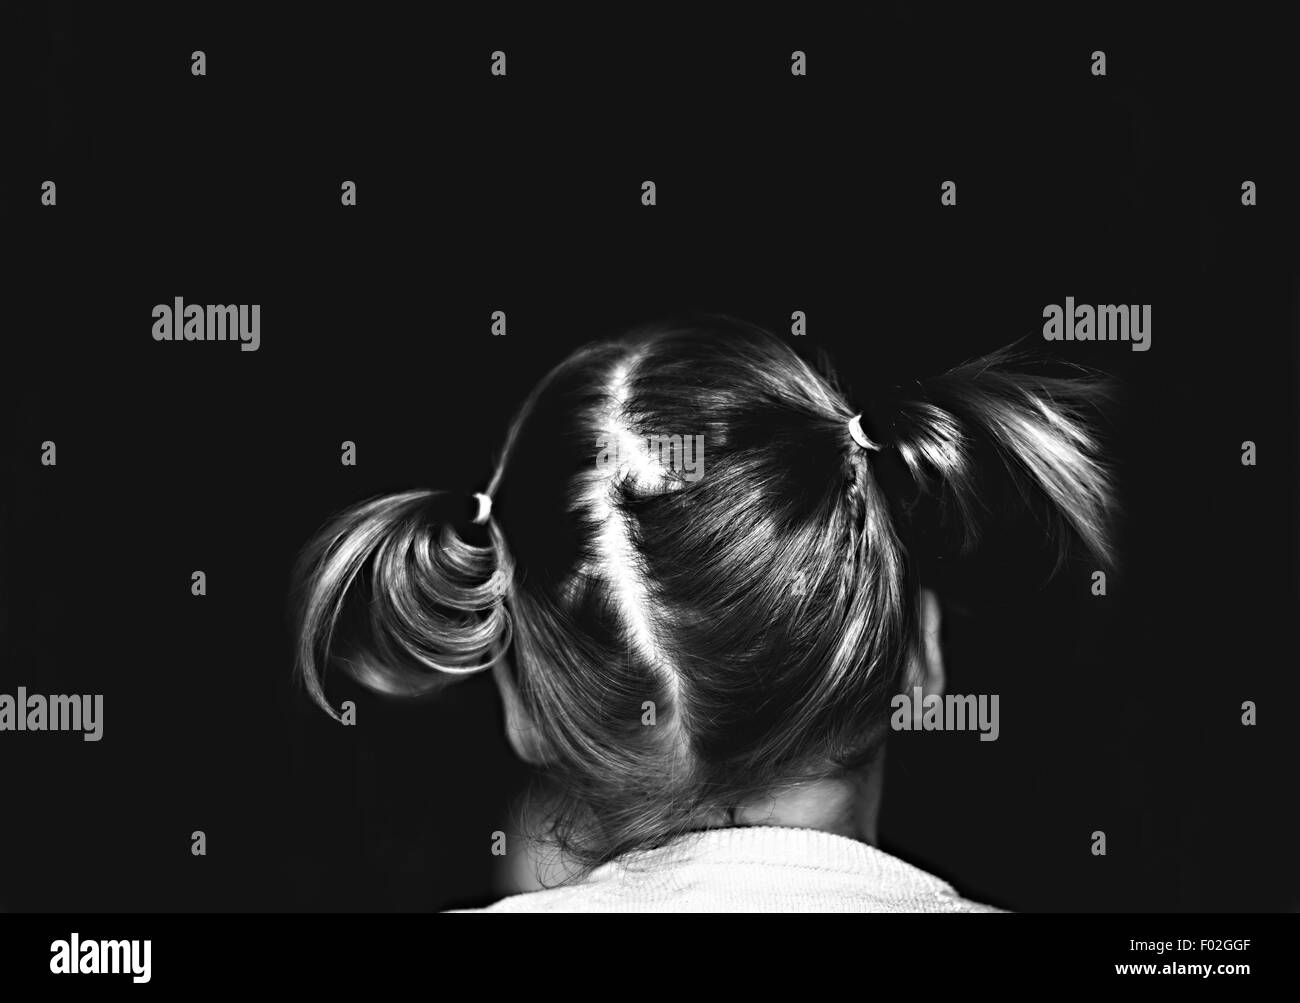 Rear view of a girl with pigtails - Stock Image